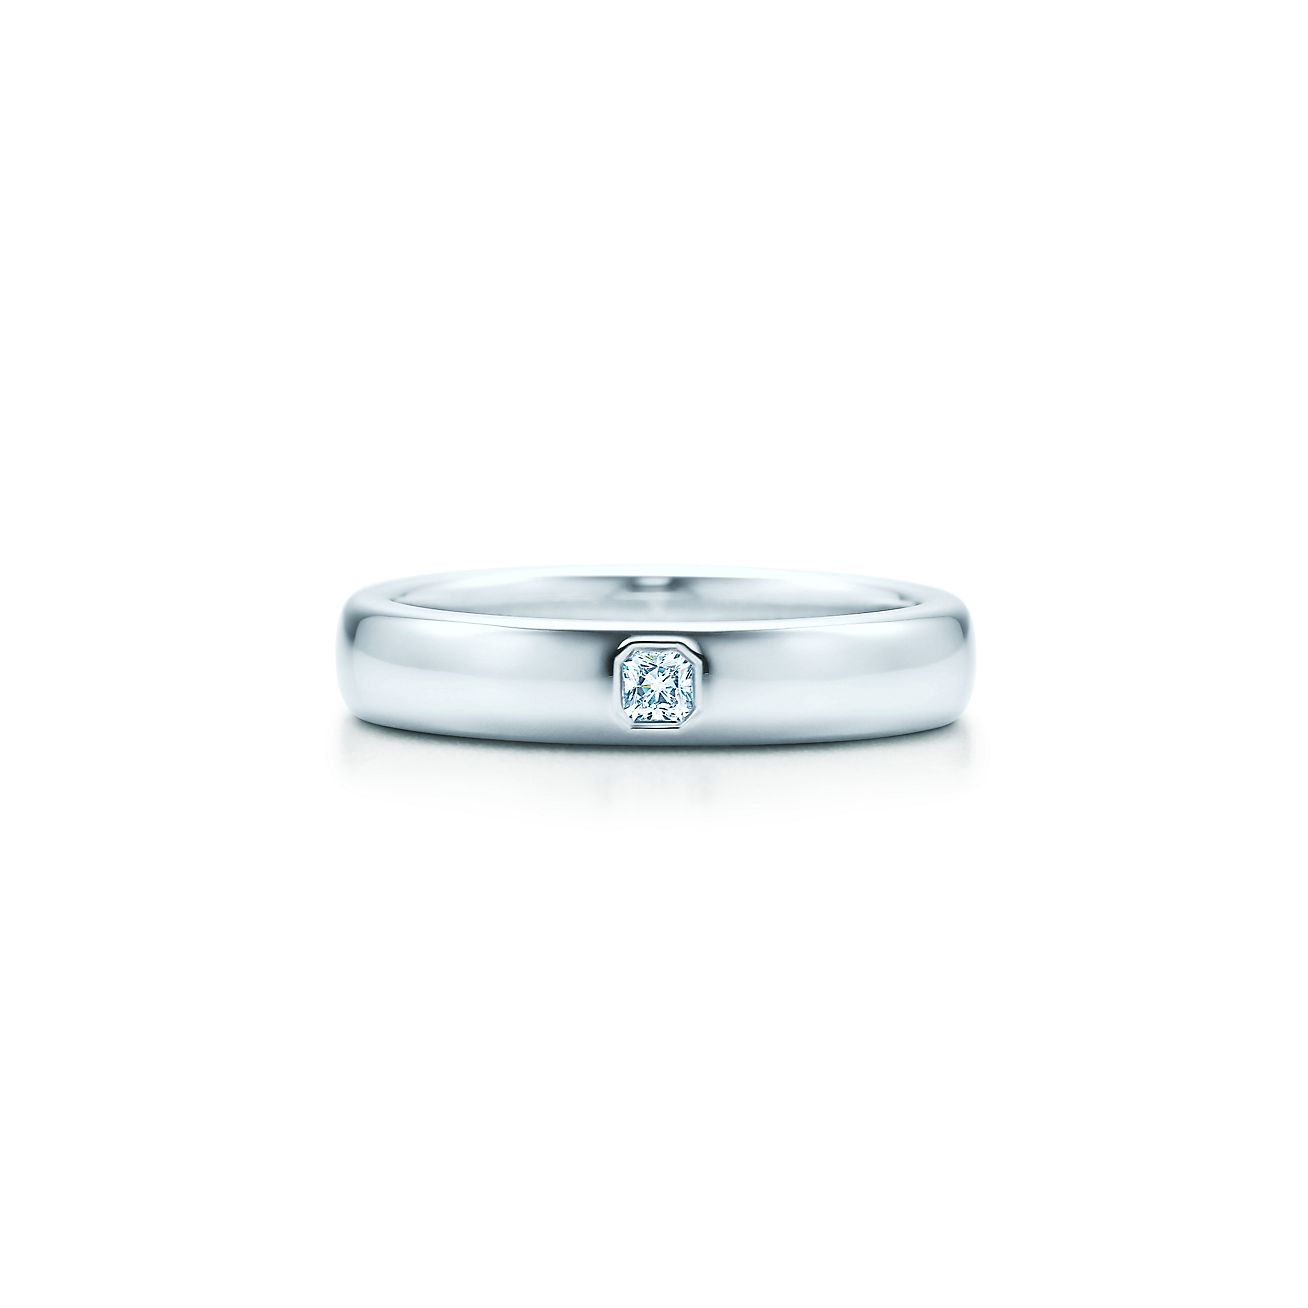 Tiffany Classic Wedding Band Ring In Platinum With A Diamond 4 Mm